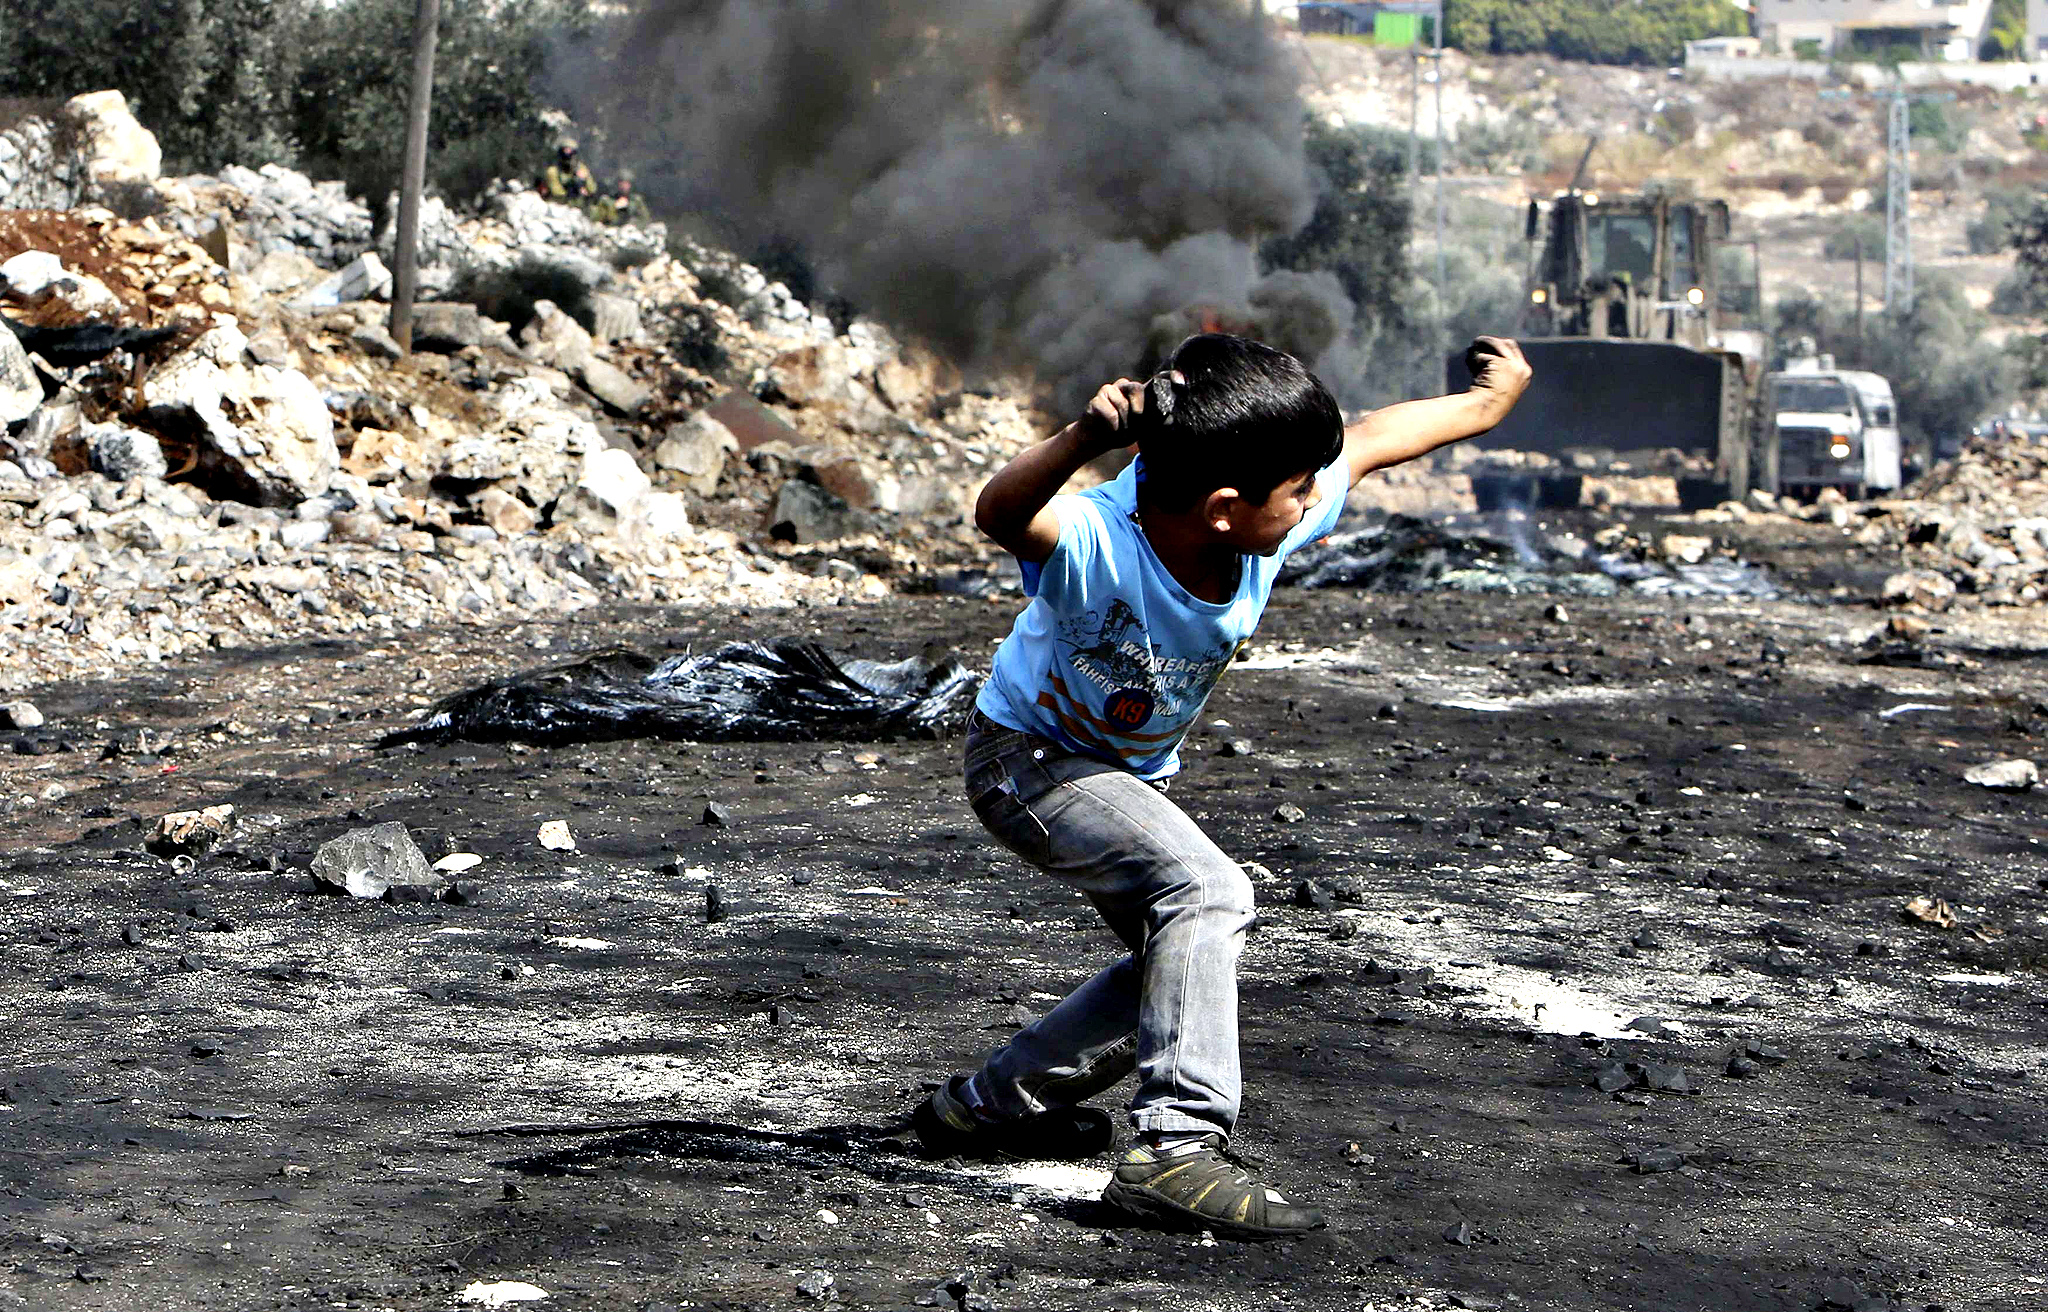 Palestinian boy throws stones at an armored wheel loader of the IDF during clashes following a protest against the near-by Jewish settlement of Qadomem, in the West Bank village of Kofr Qadom...A Palestinian boy throws stones at an armored wheel loader of the Israeli Defense Forces (IDF) during clashes following a protest against the near-by Jewish settlement of Qadomem, in the West Bank village of Kofr Qadom near Nablus October 17, 2014.